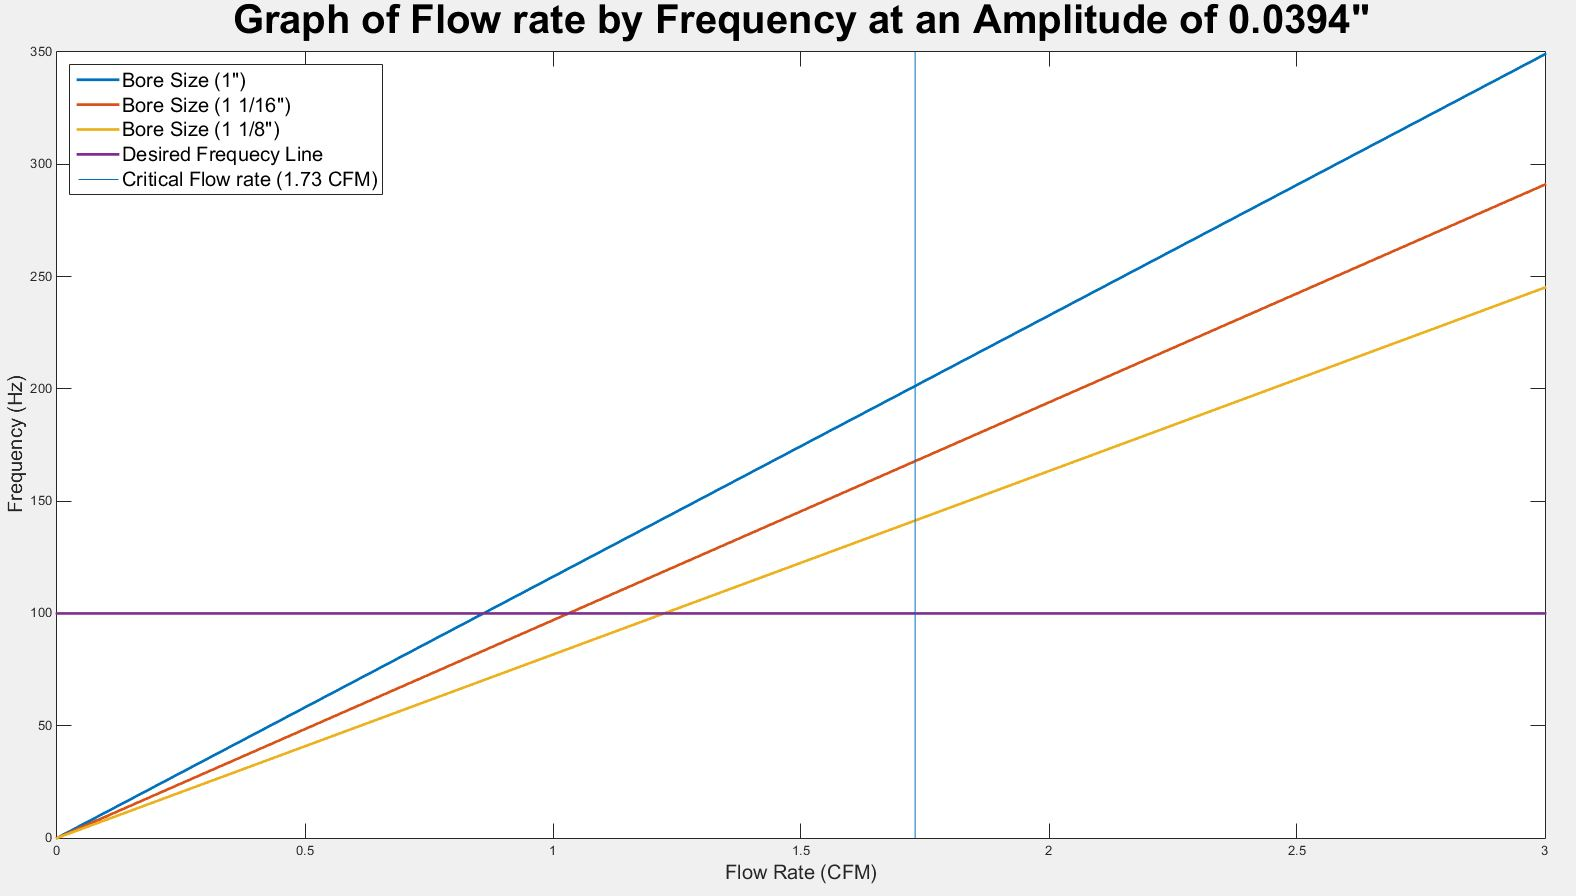 public/Preliminary Detailed Design Documents/P16103_flow rate graph_Amplitude_0.0394.JPG